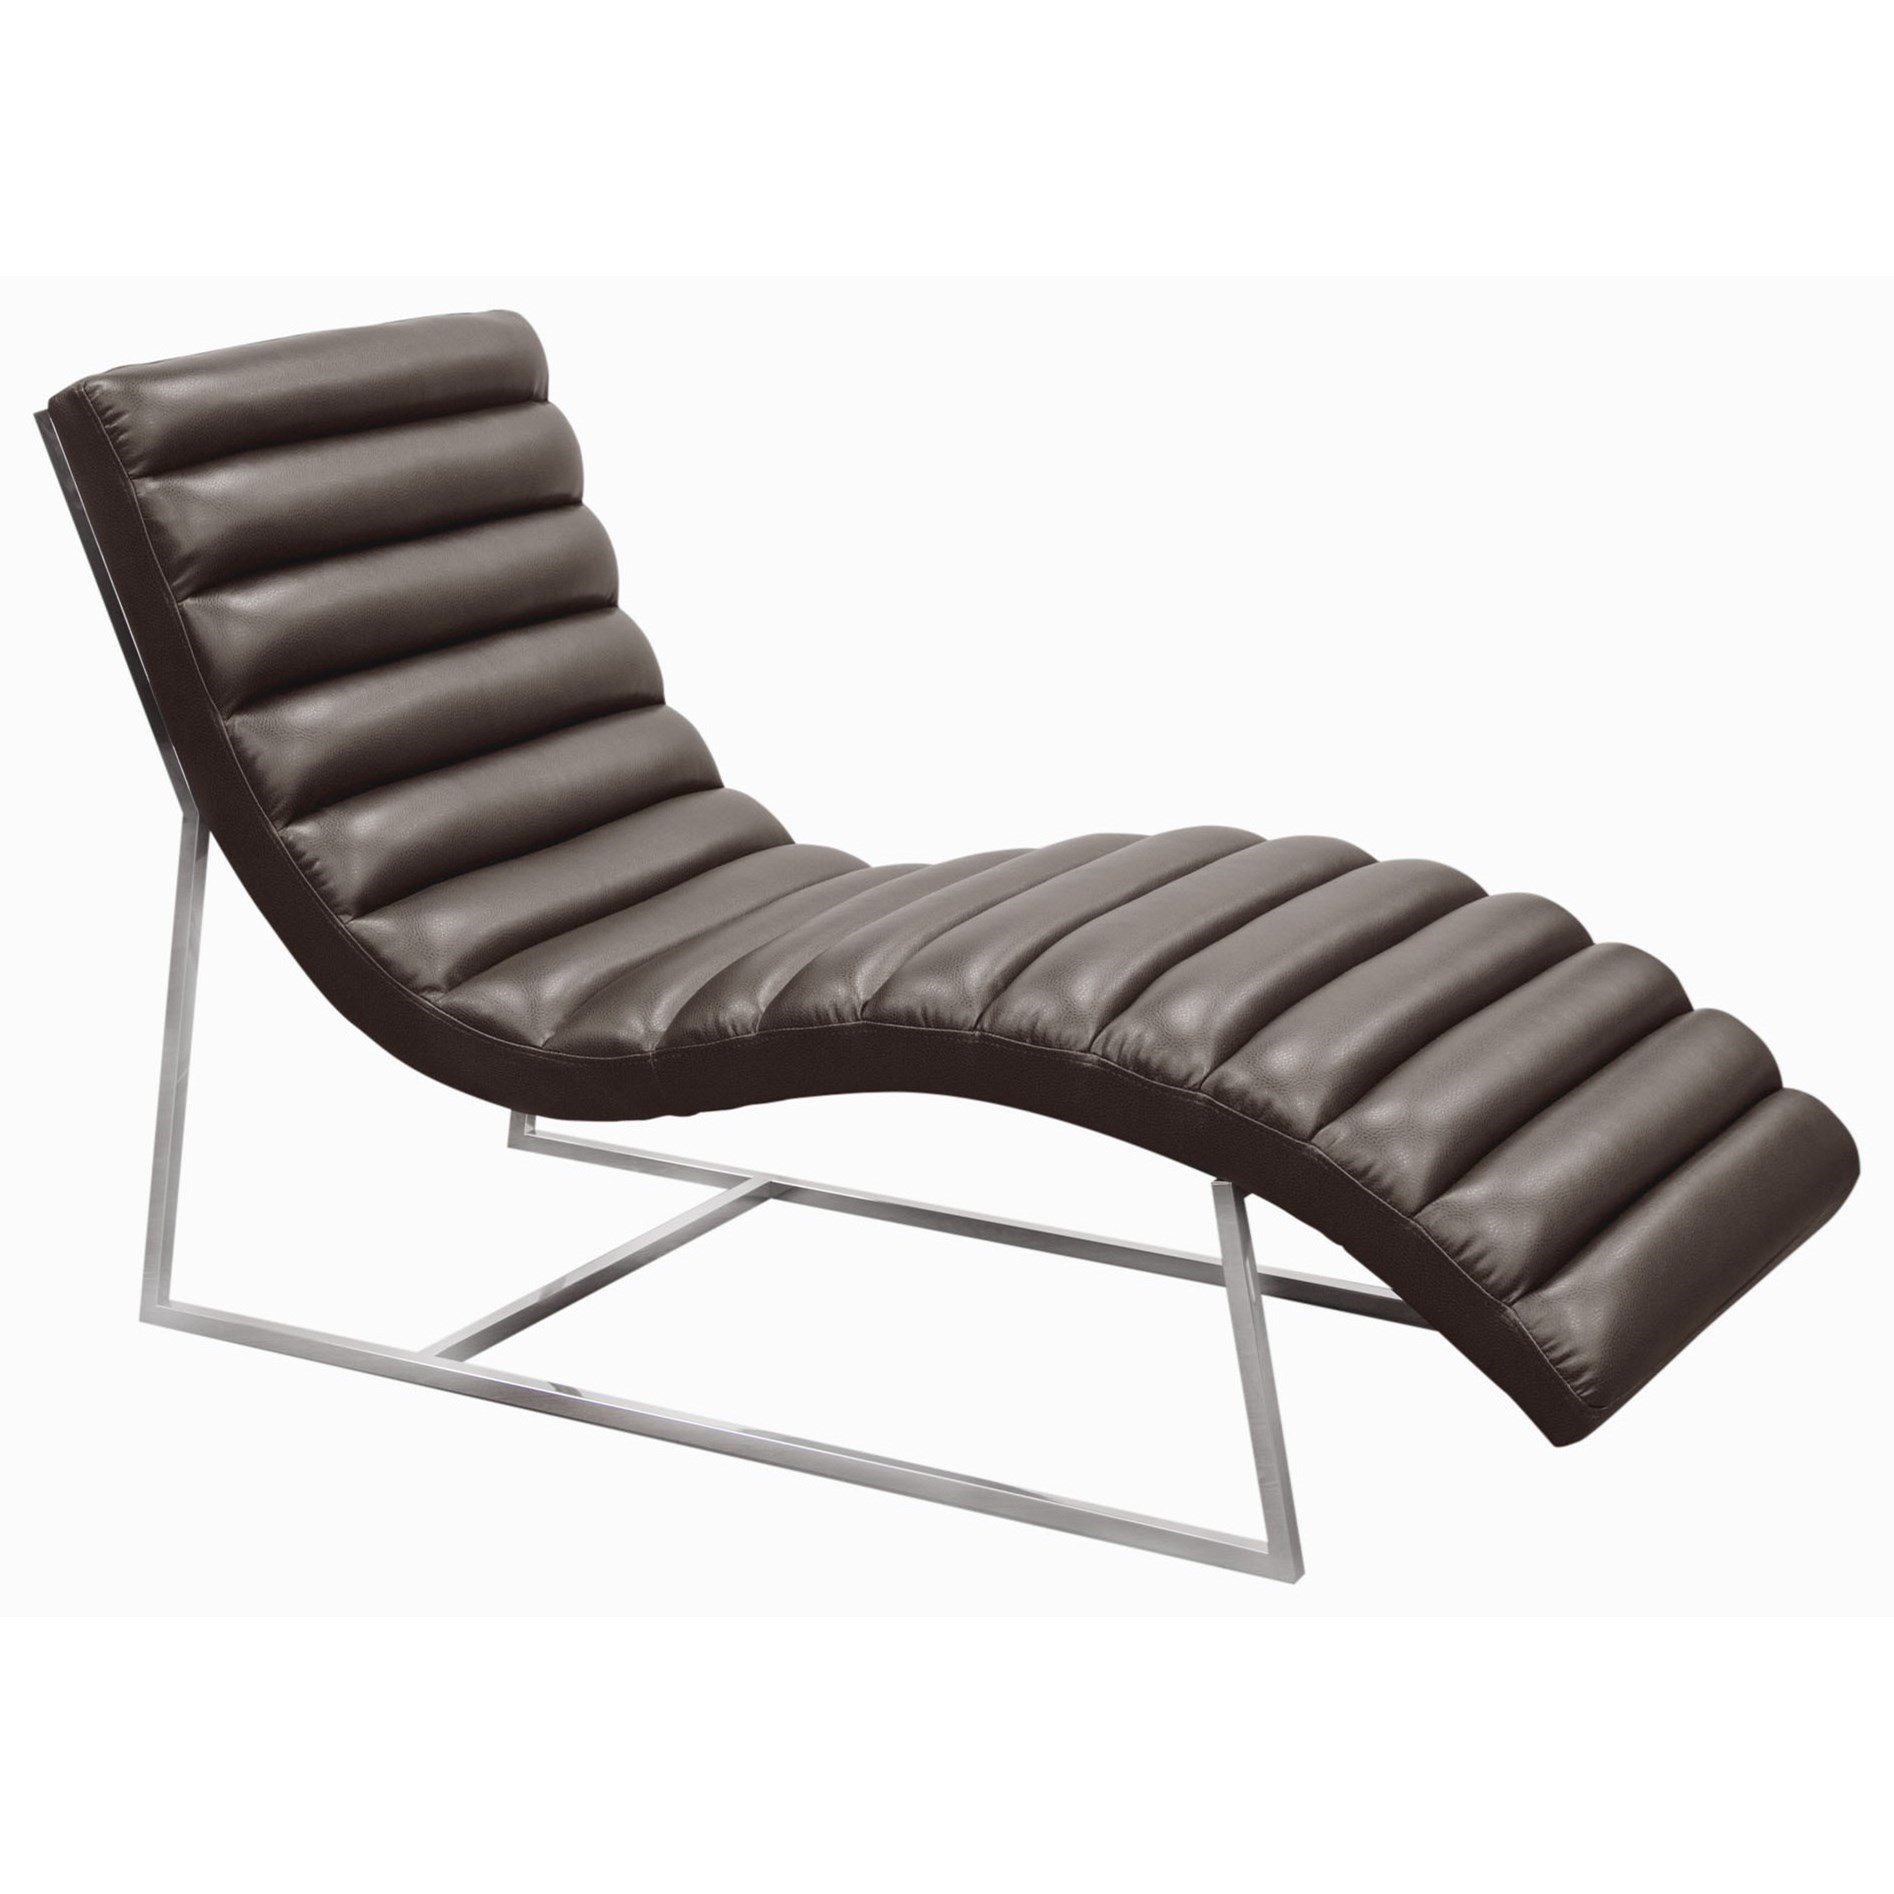 Diamond Sofa Bardot Grey Chaise Lounge - Item Number: BARDOTCAEG